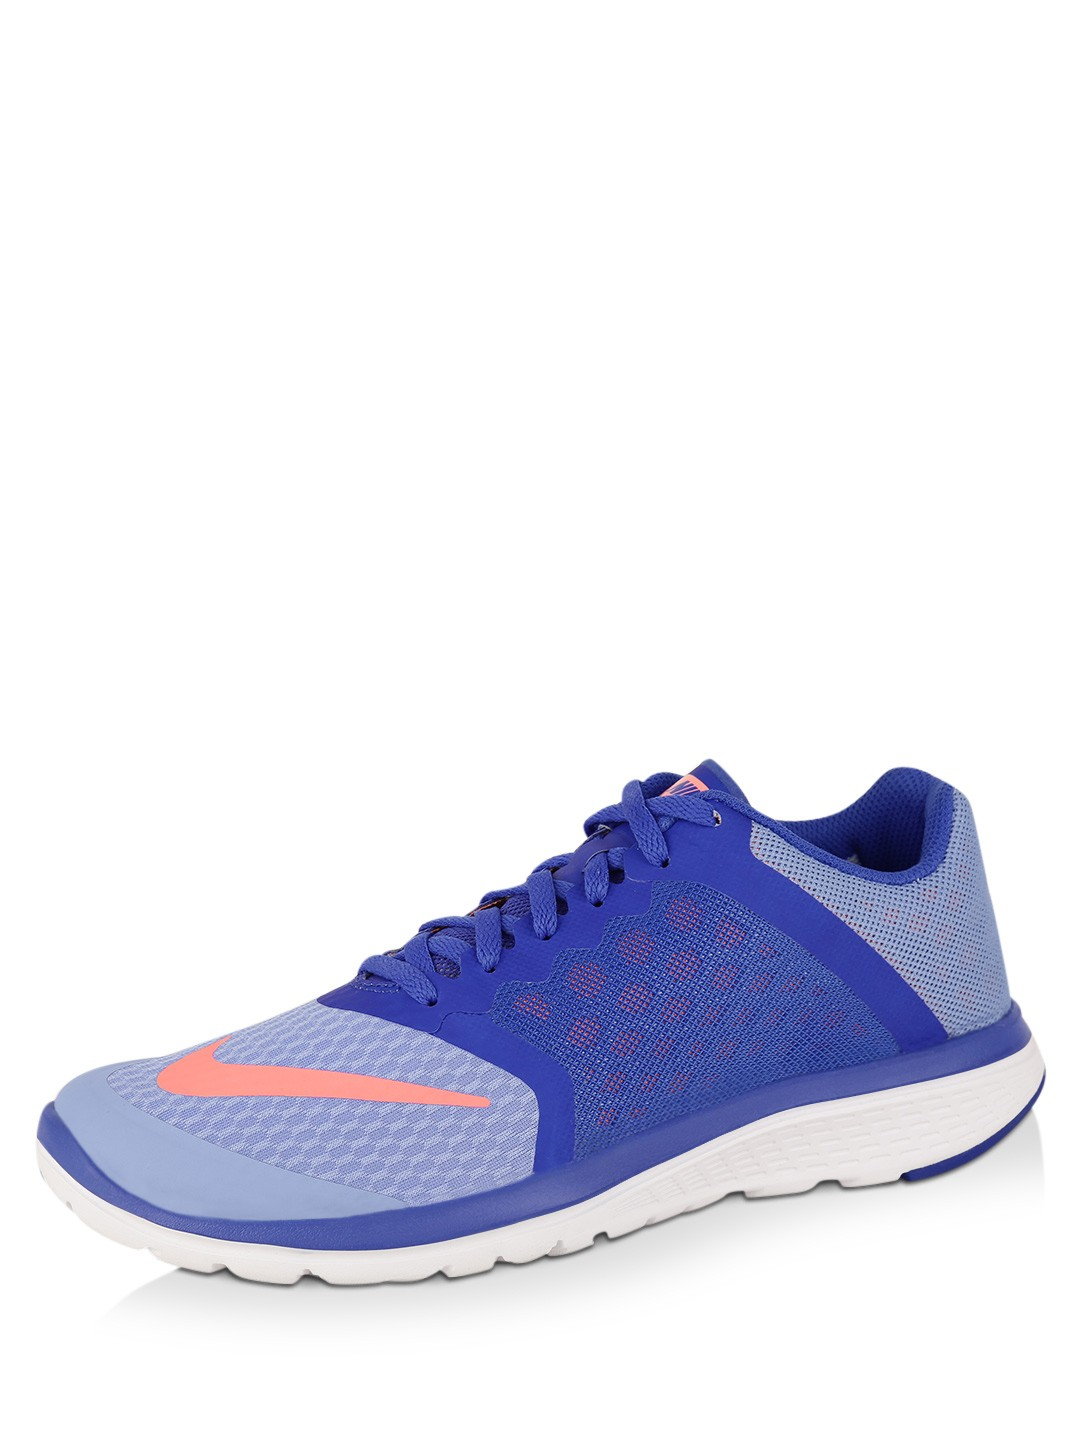 Cheap Nike air max sl ii Cheap Nike Free Powerlines 2 Royal Ontario Museum